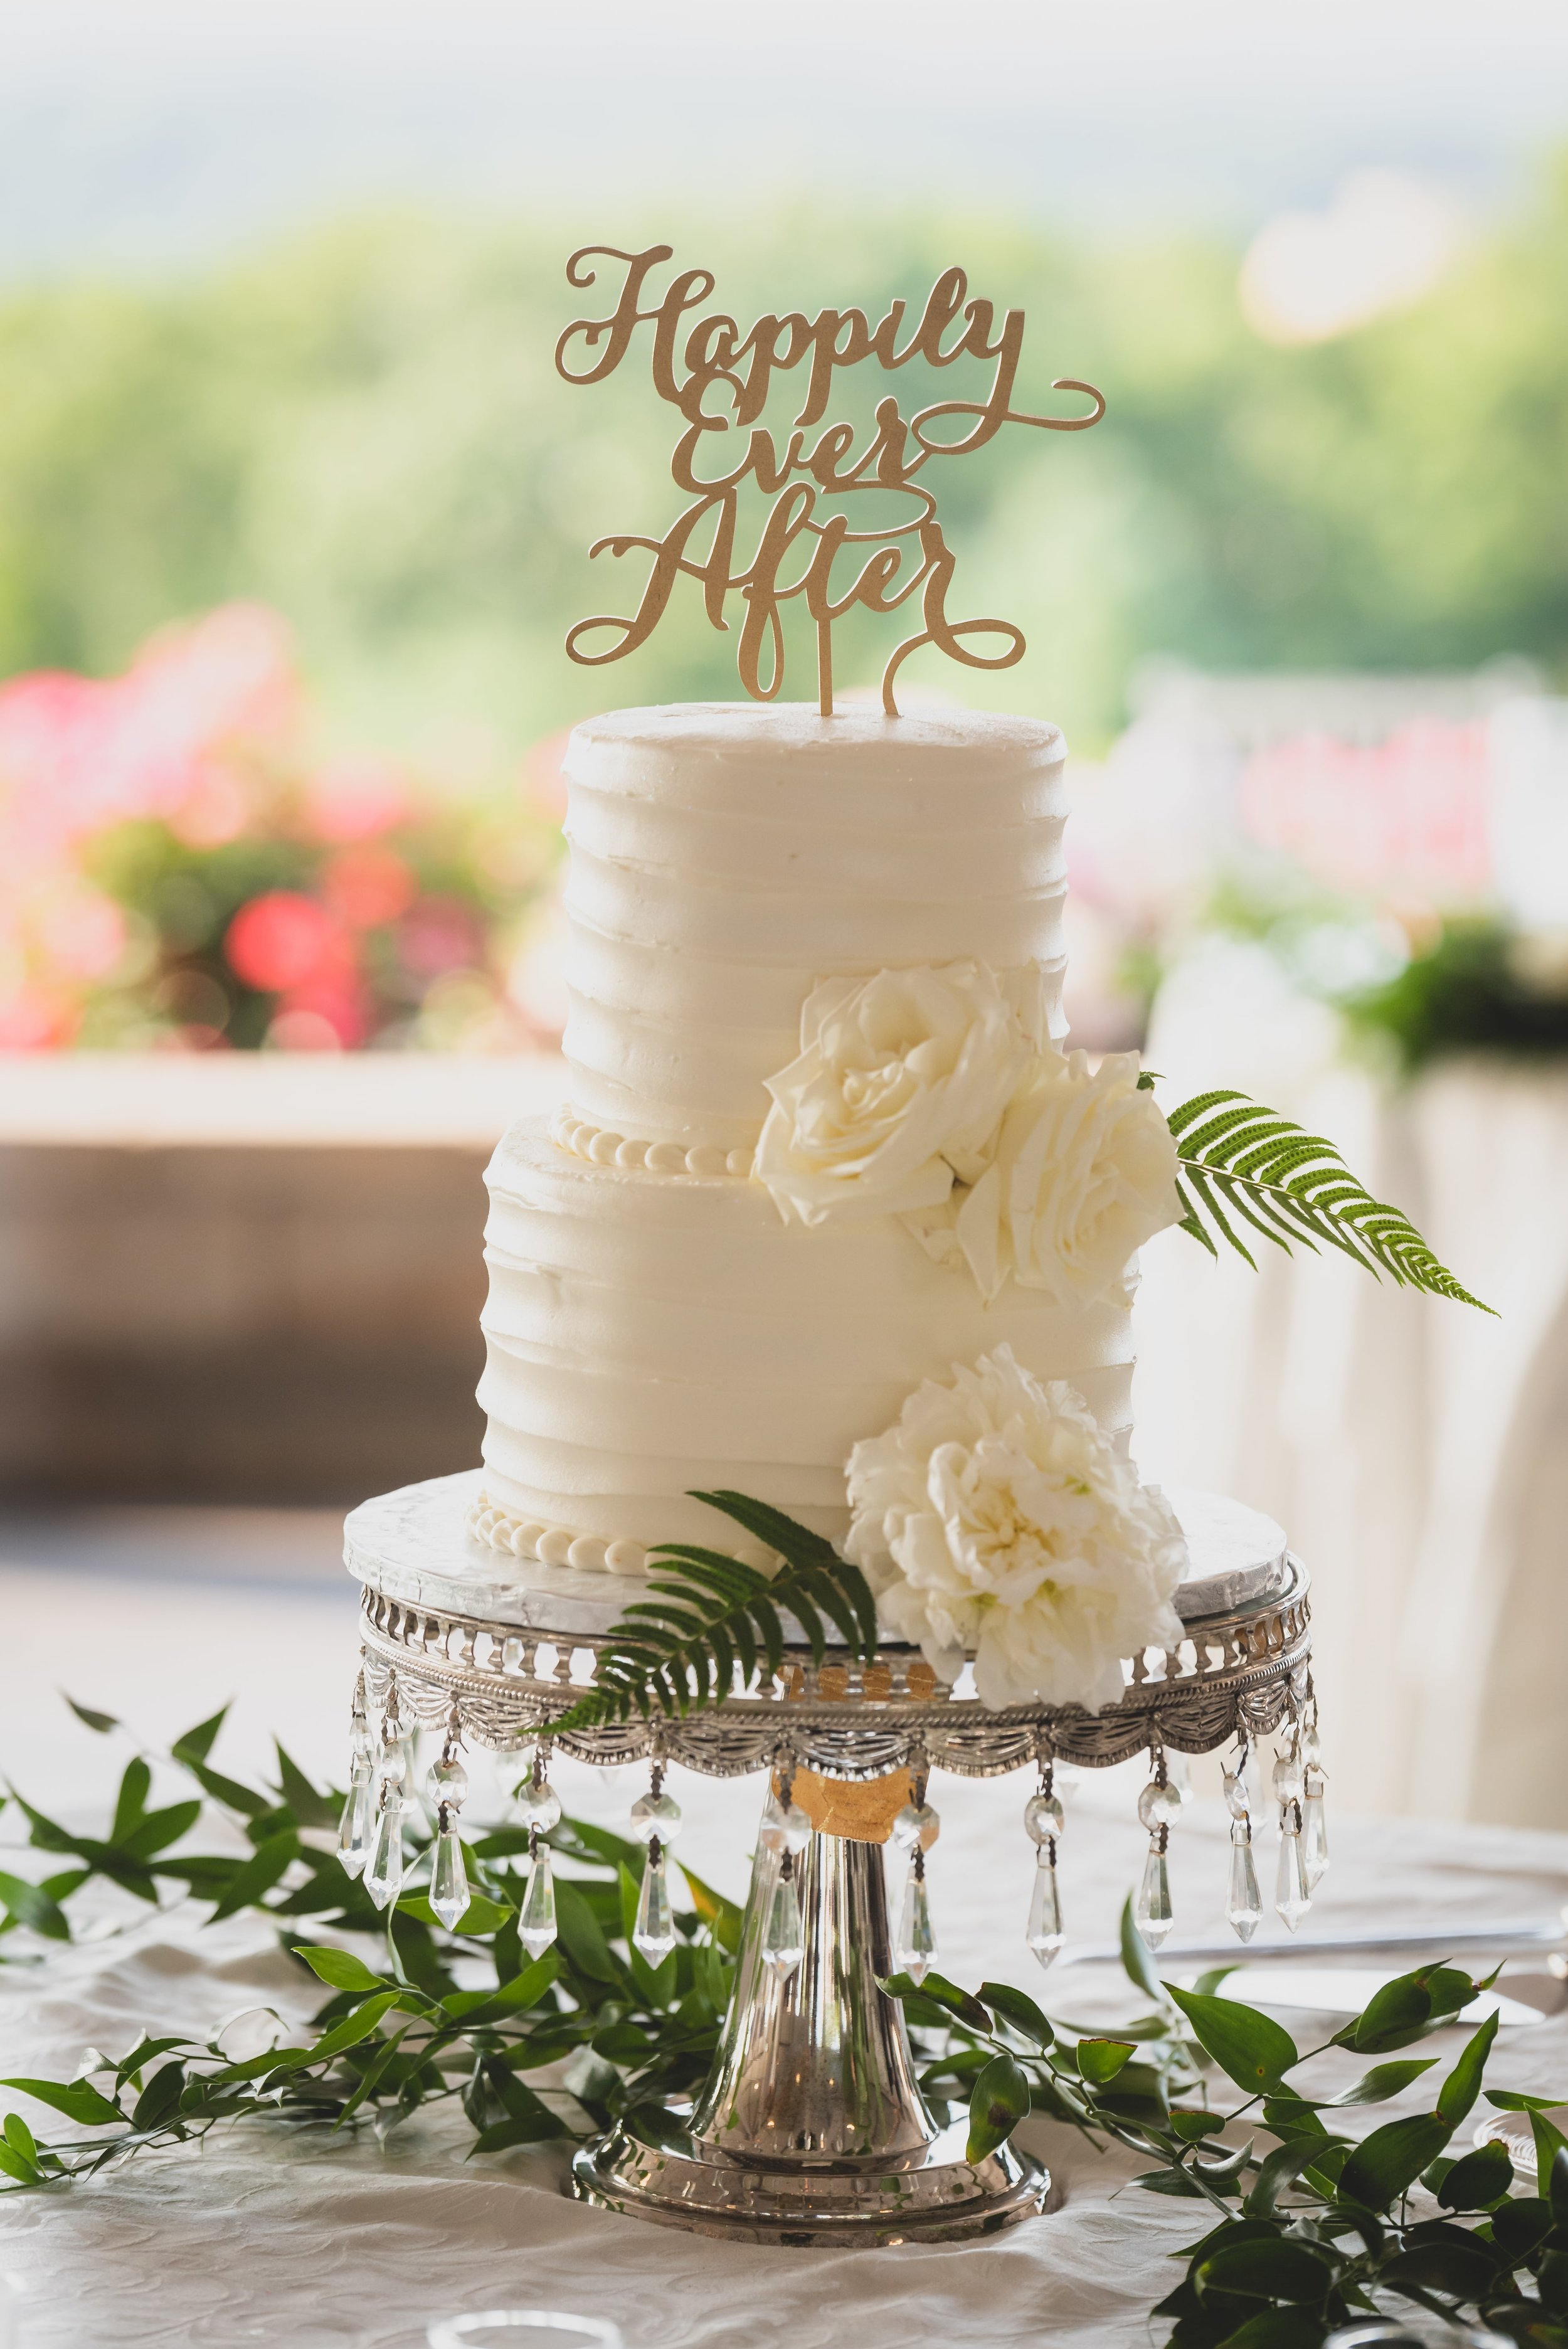 An all white wedding cake with green leaves and white roses.